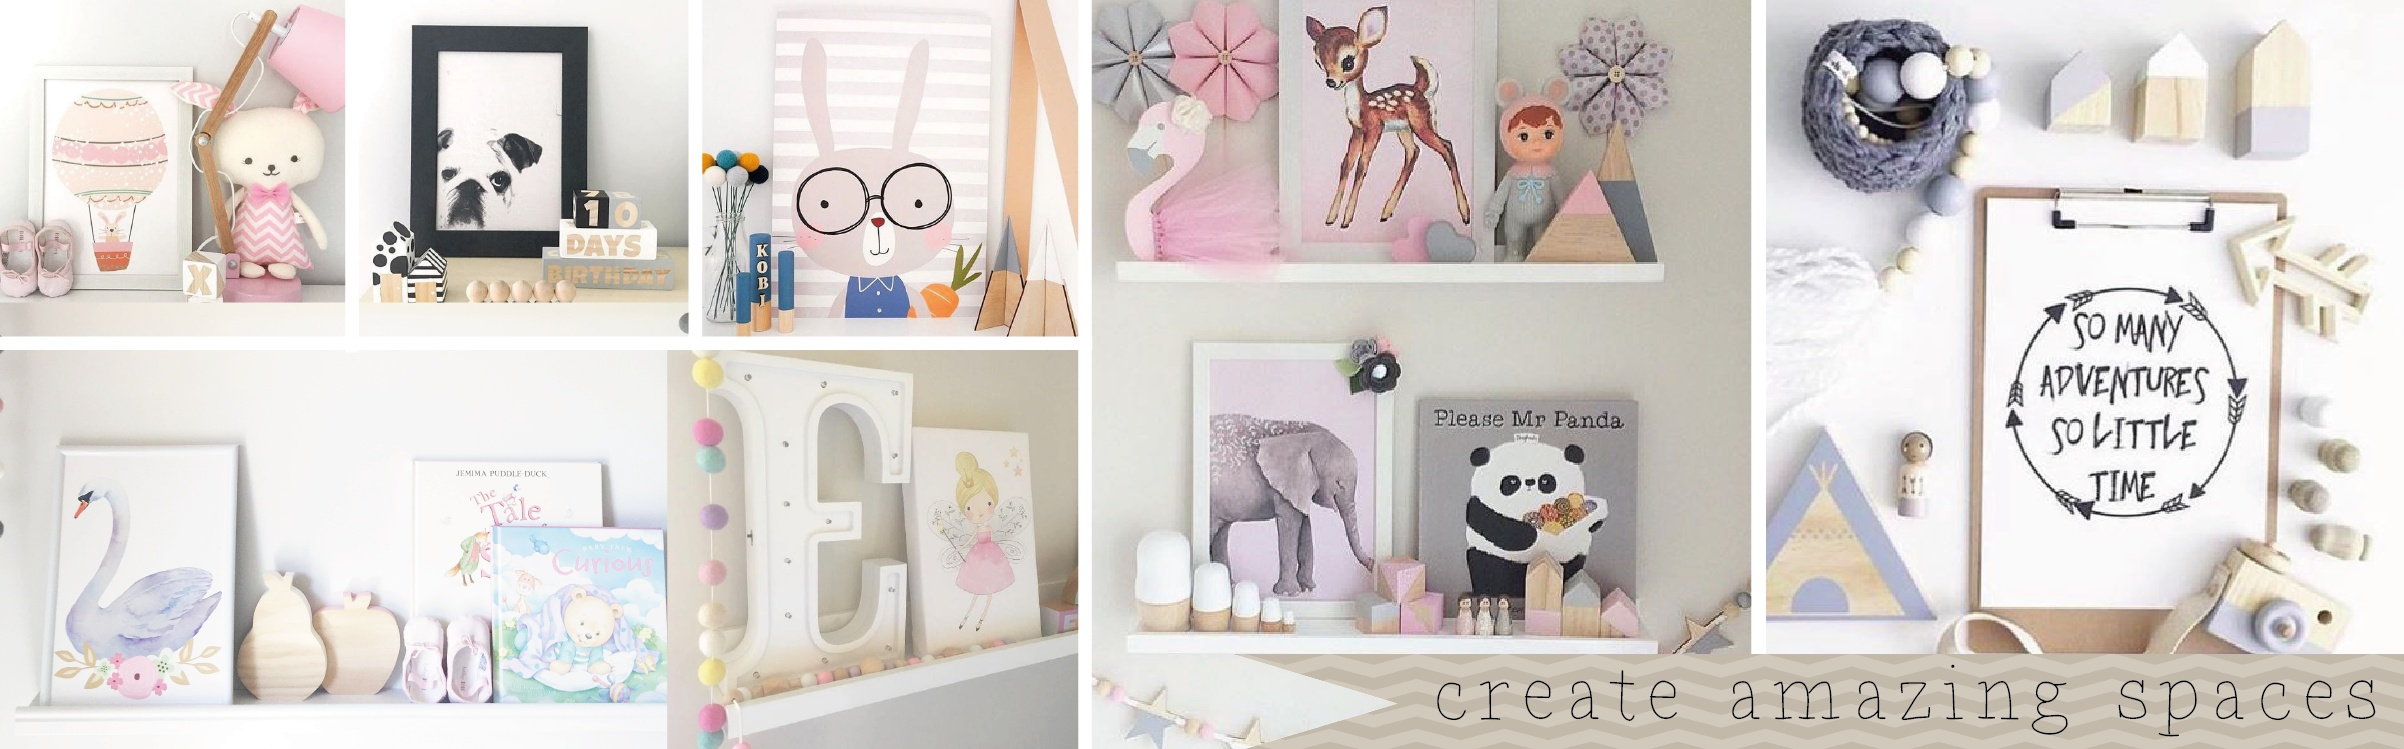 Nursery and kids bedroom prints